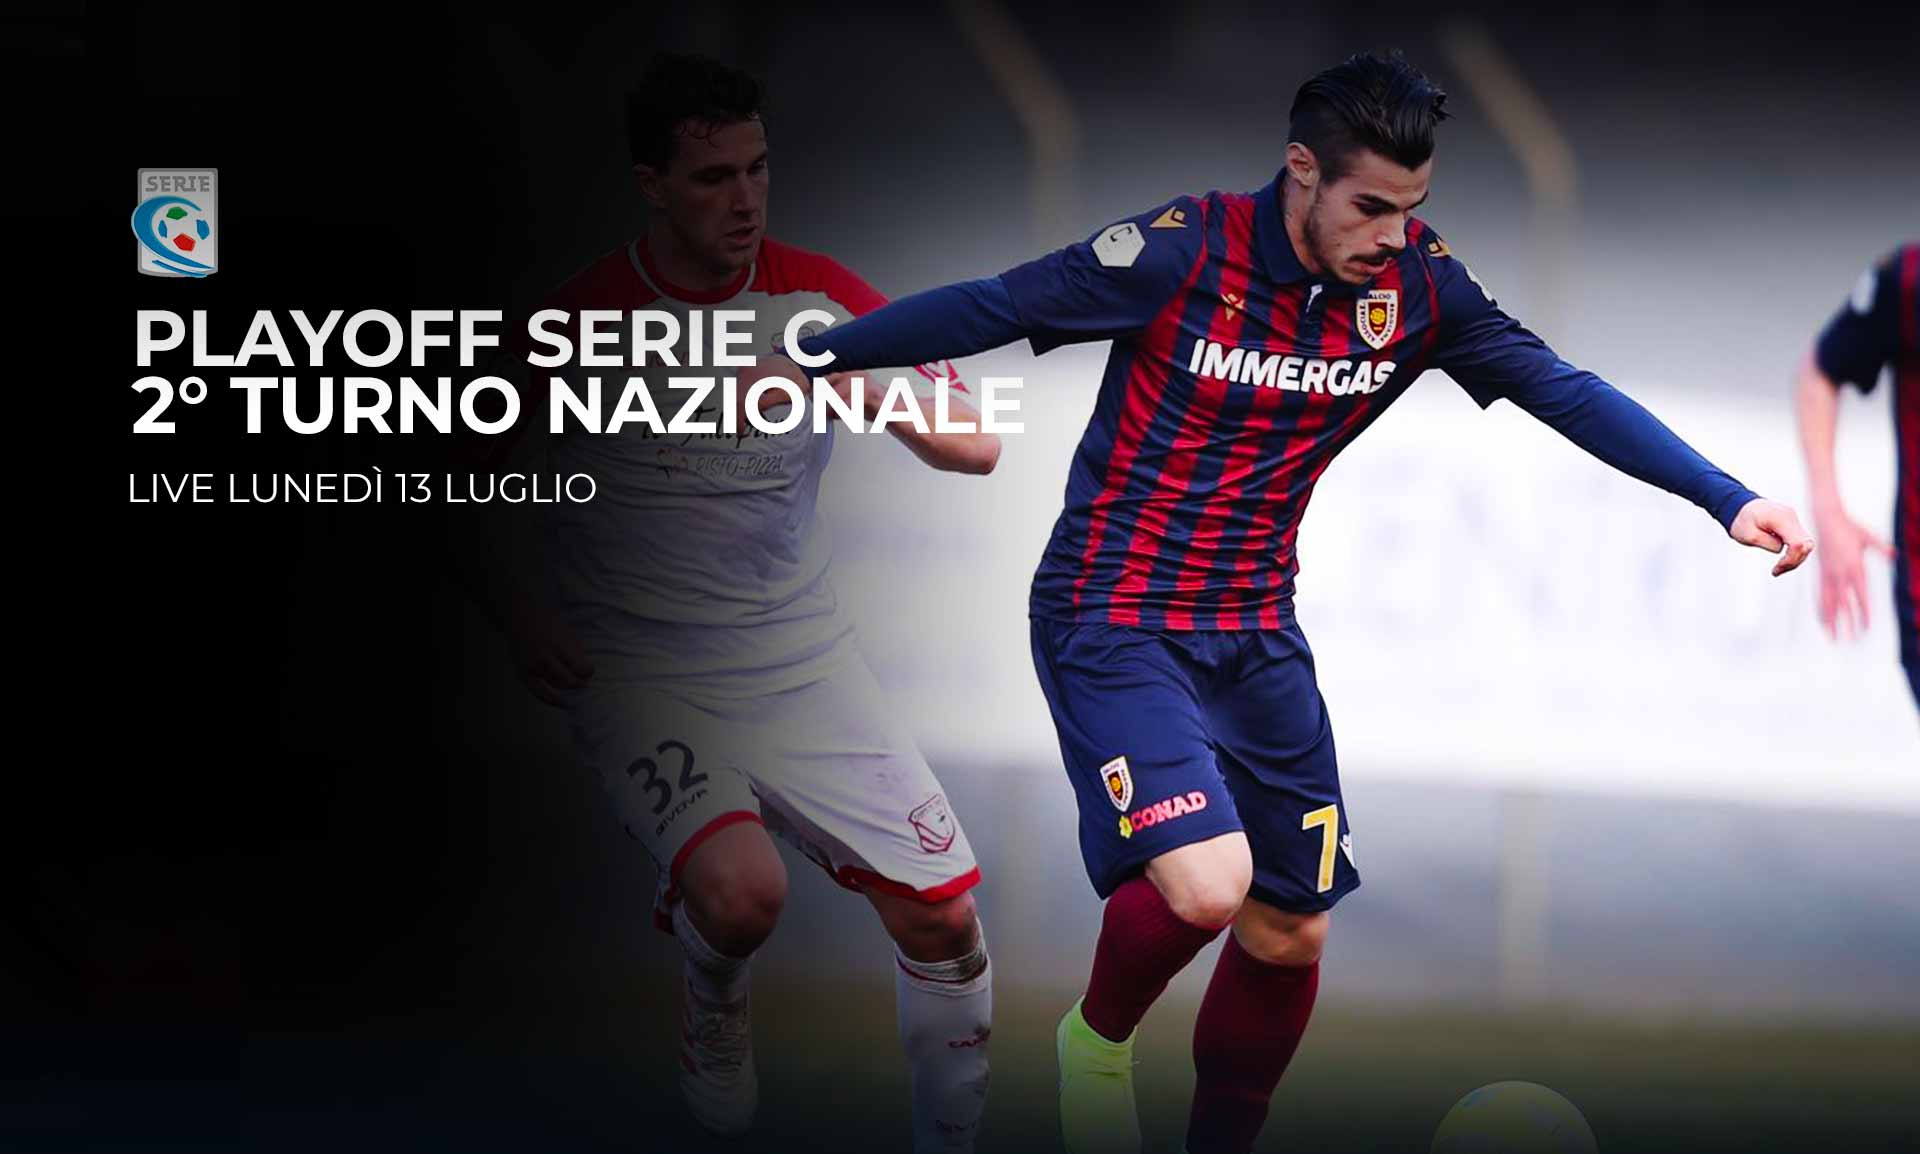 Serie C TV, Playoff Secondo Turno Nazionale - Programma e Telecronisti Eleven Sports